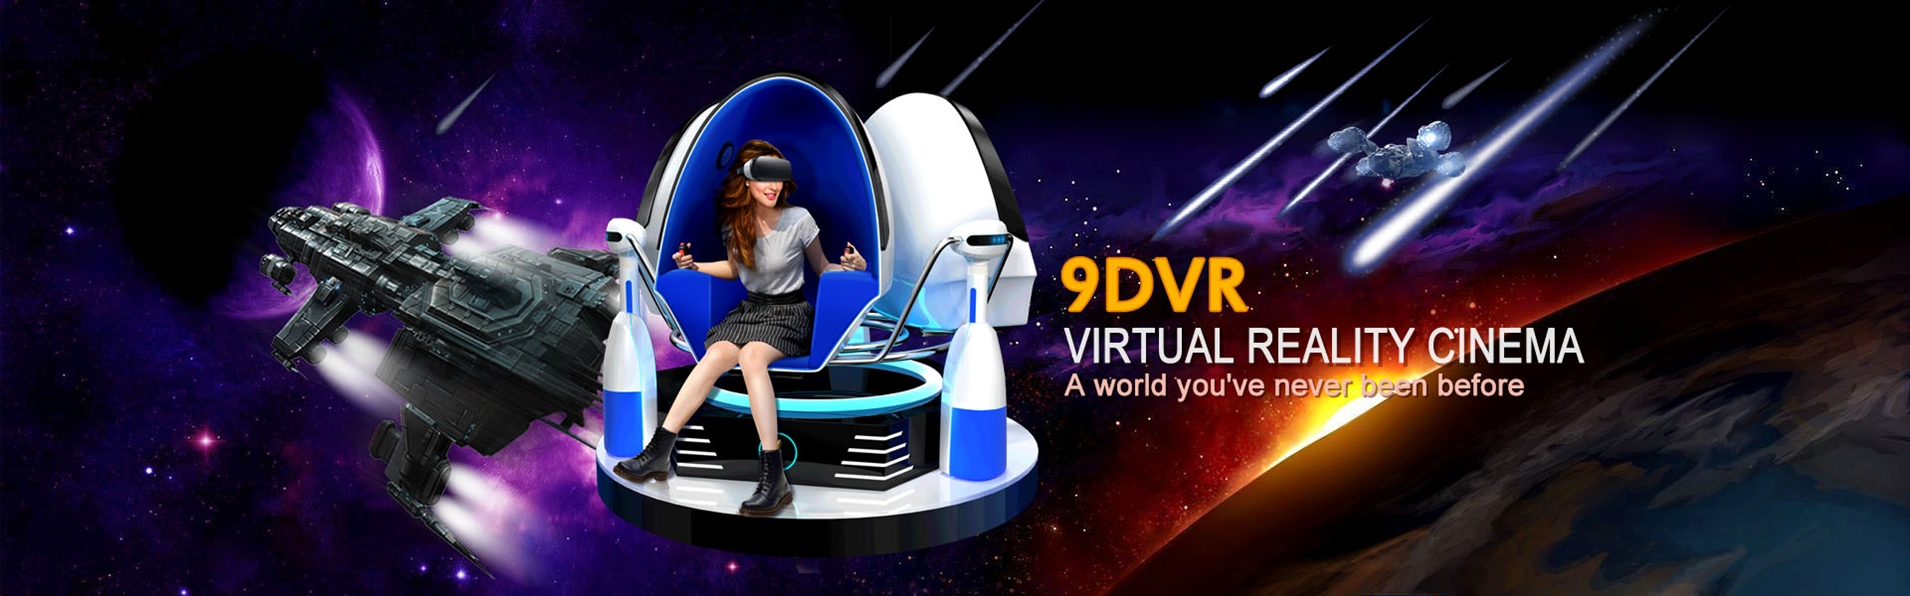 46b2b1da2f9c 9D Egg VR Cinema, 9D VR, 9D Cinema, 9D VR Simulator, VR Simulator, Virtual  Reality Simulator, VR Cinema Simulator - GZ Gold Hunter Electronics